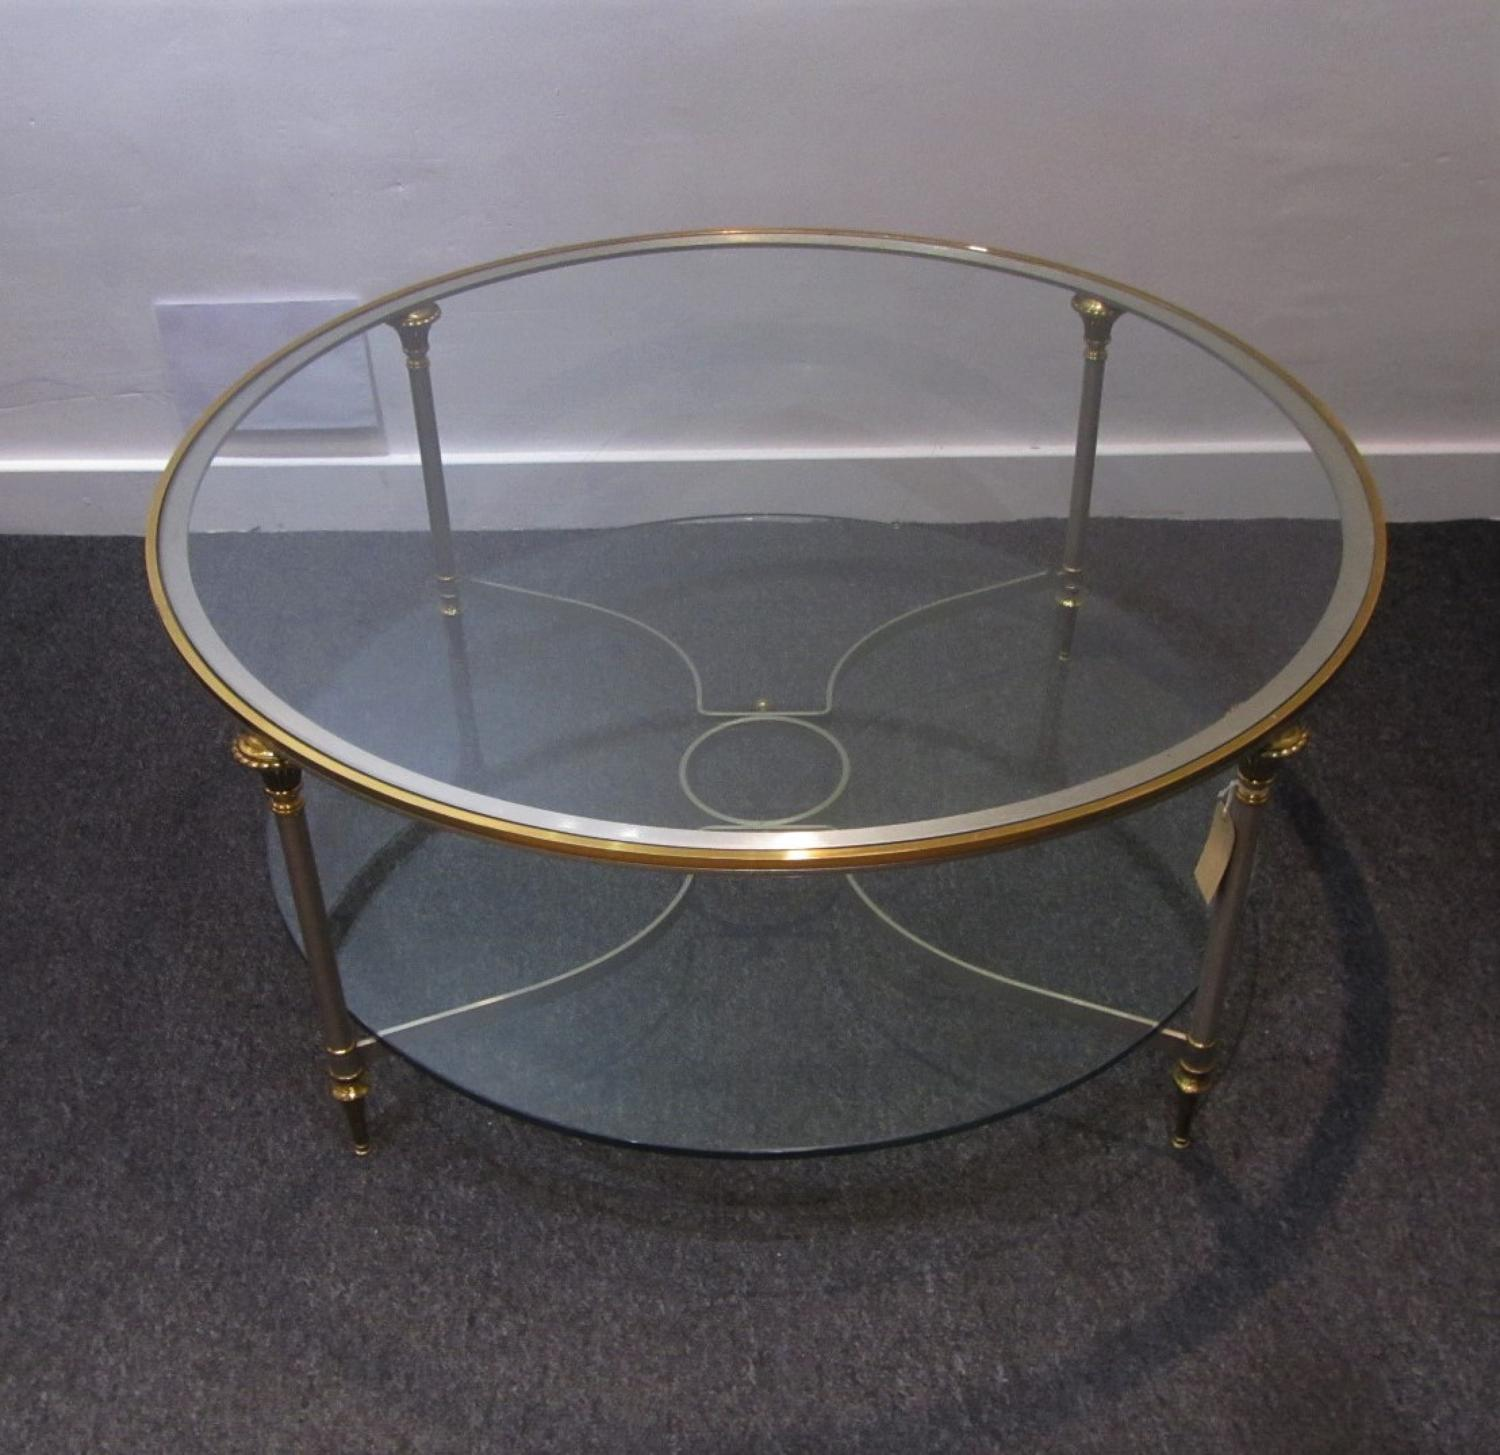 A circular Maison Jansen coffee table